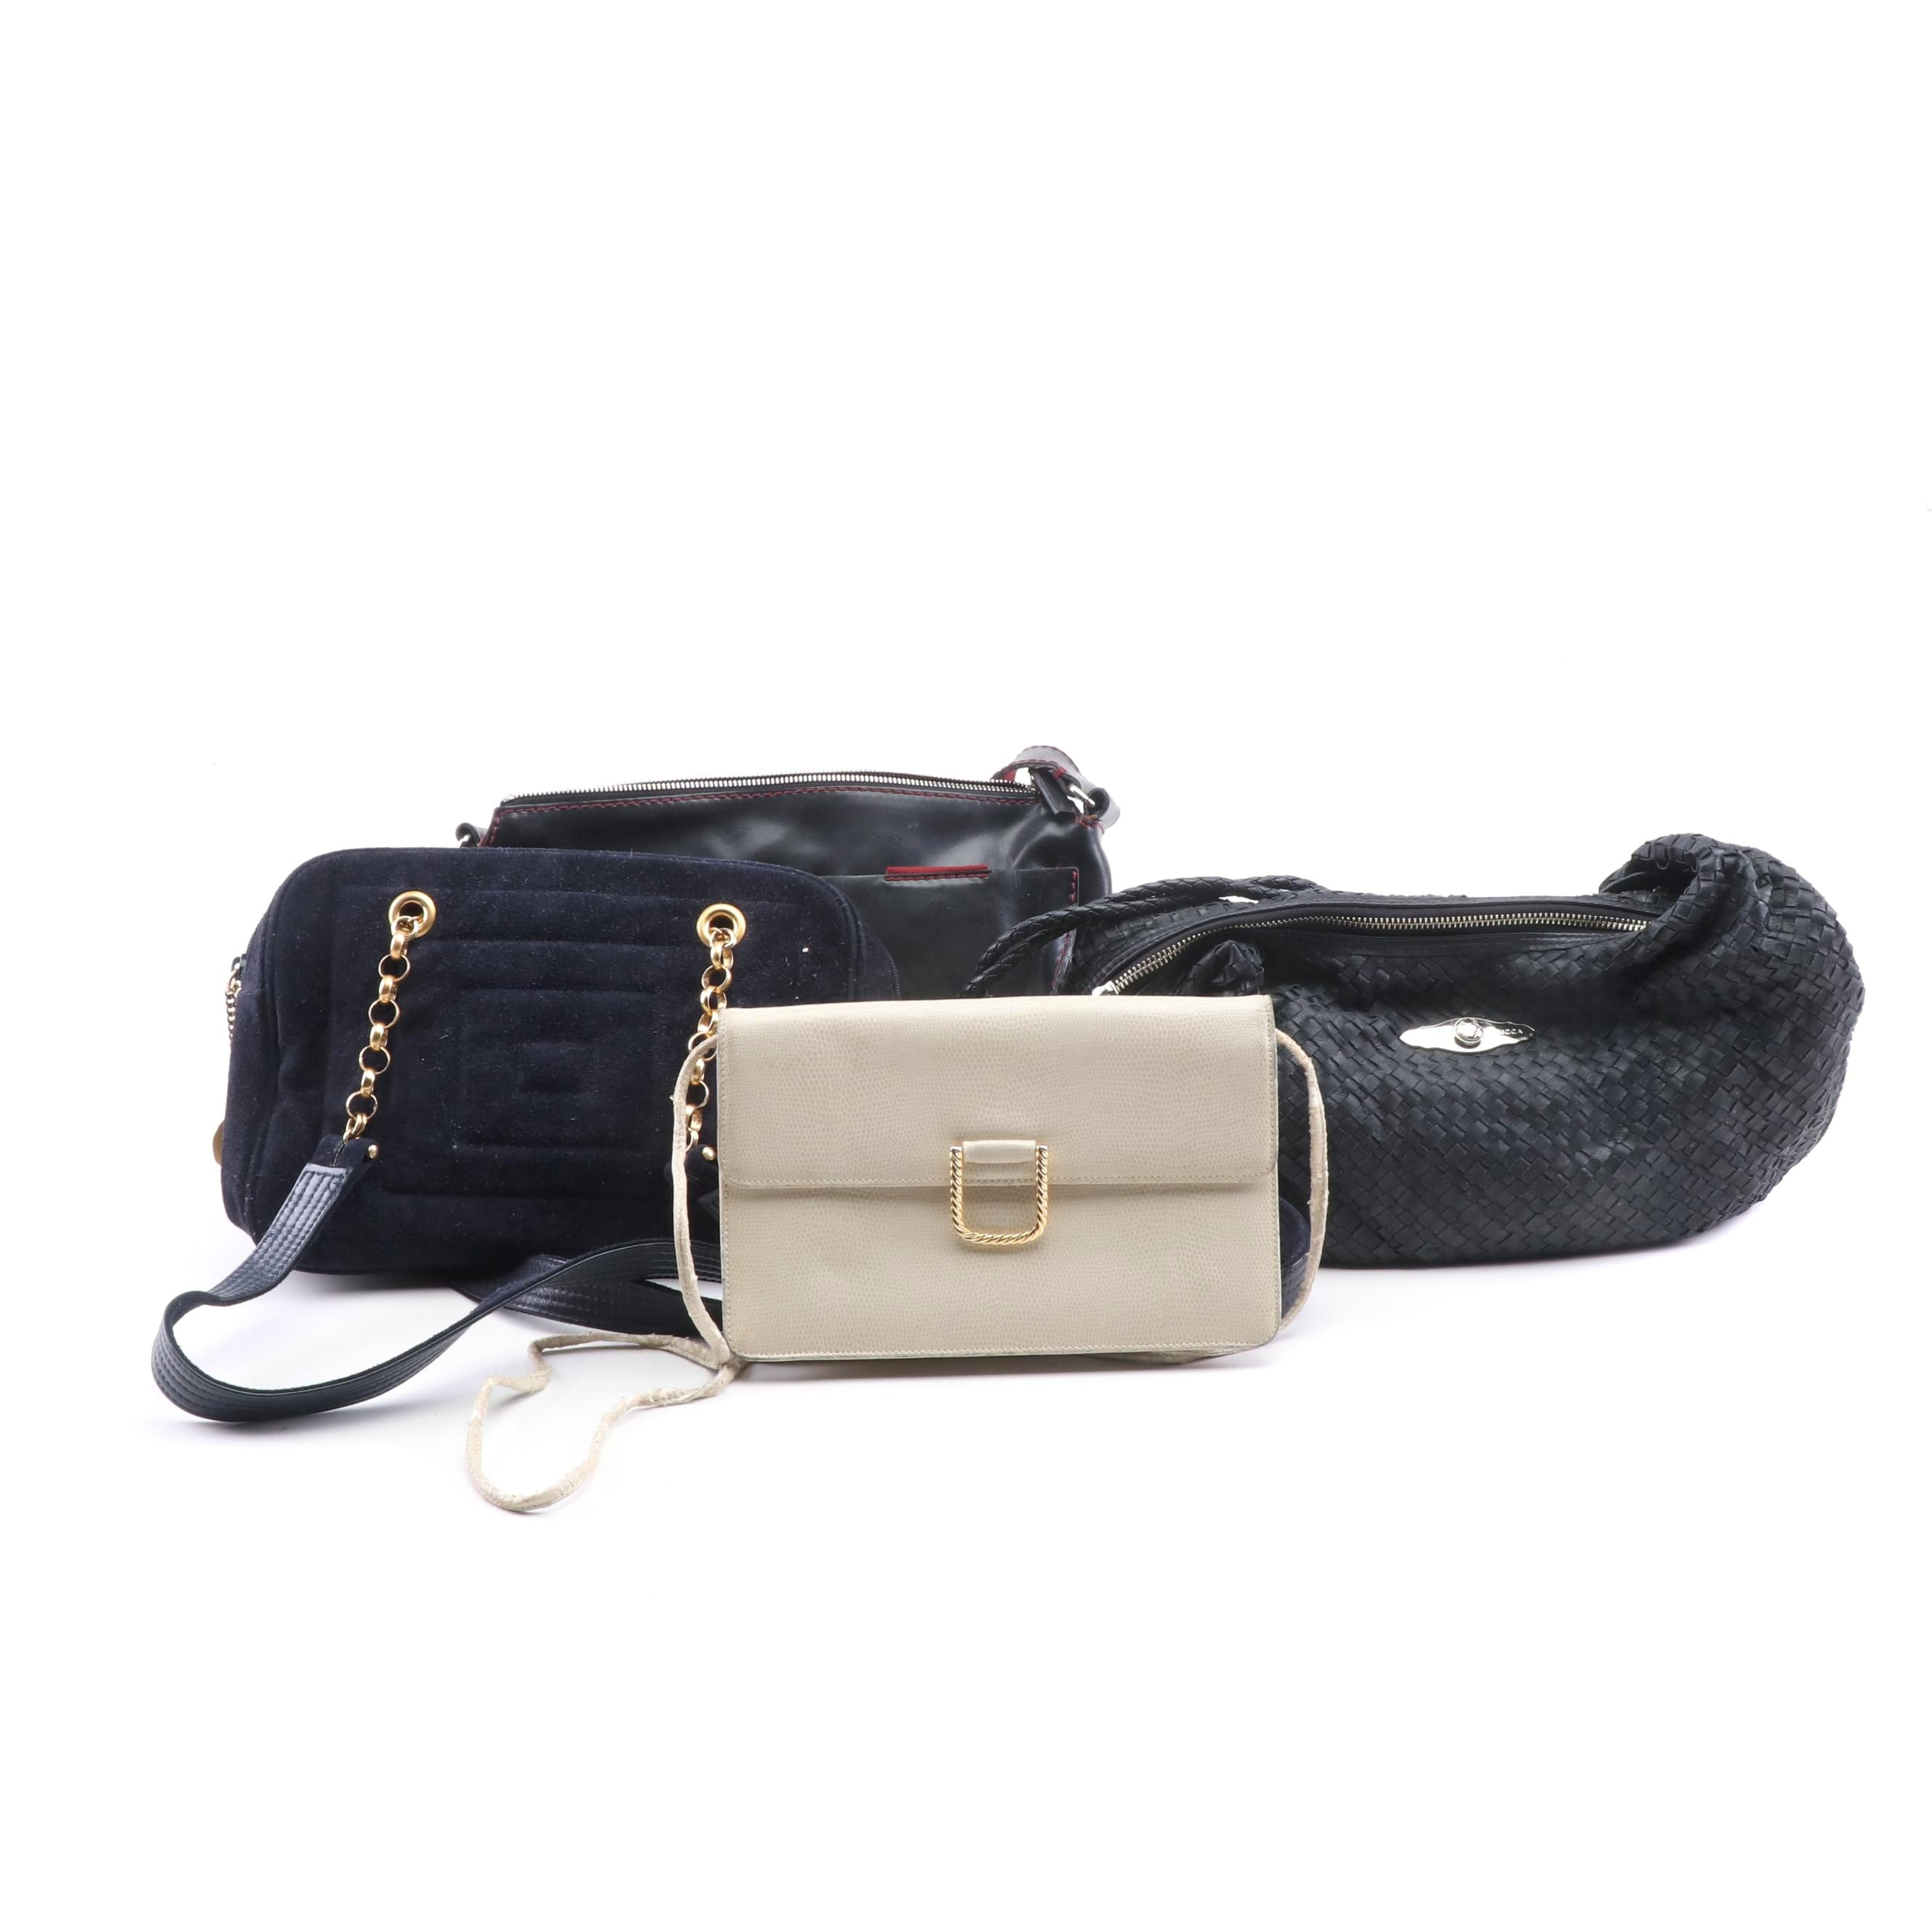 Leather and Suede Shoulder Bags Including Givenchy Paris and Elliott Lucca